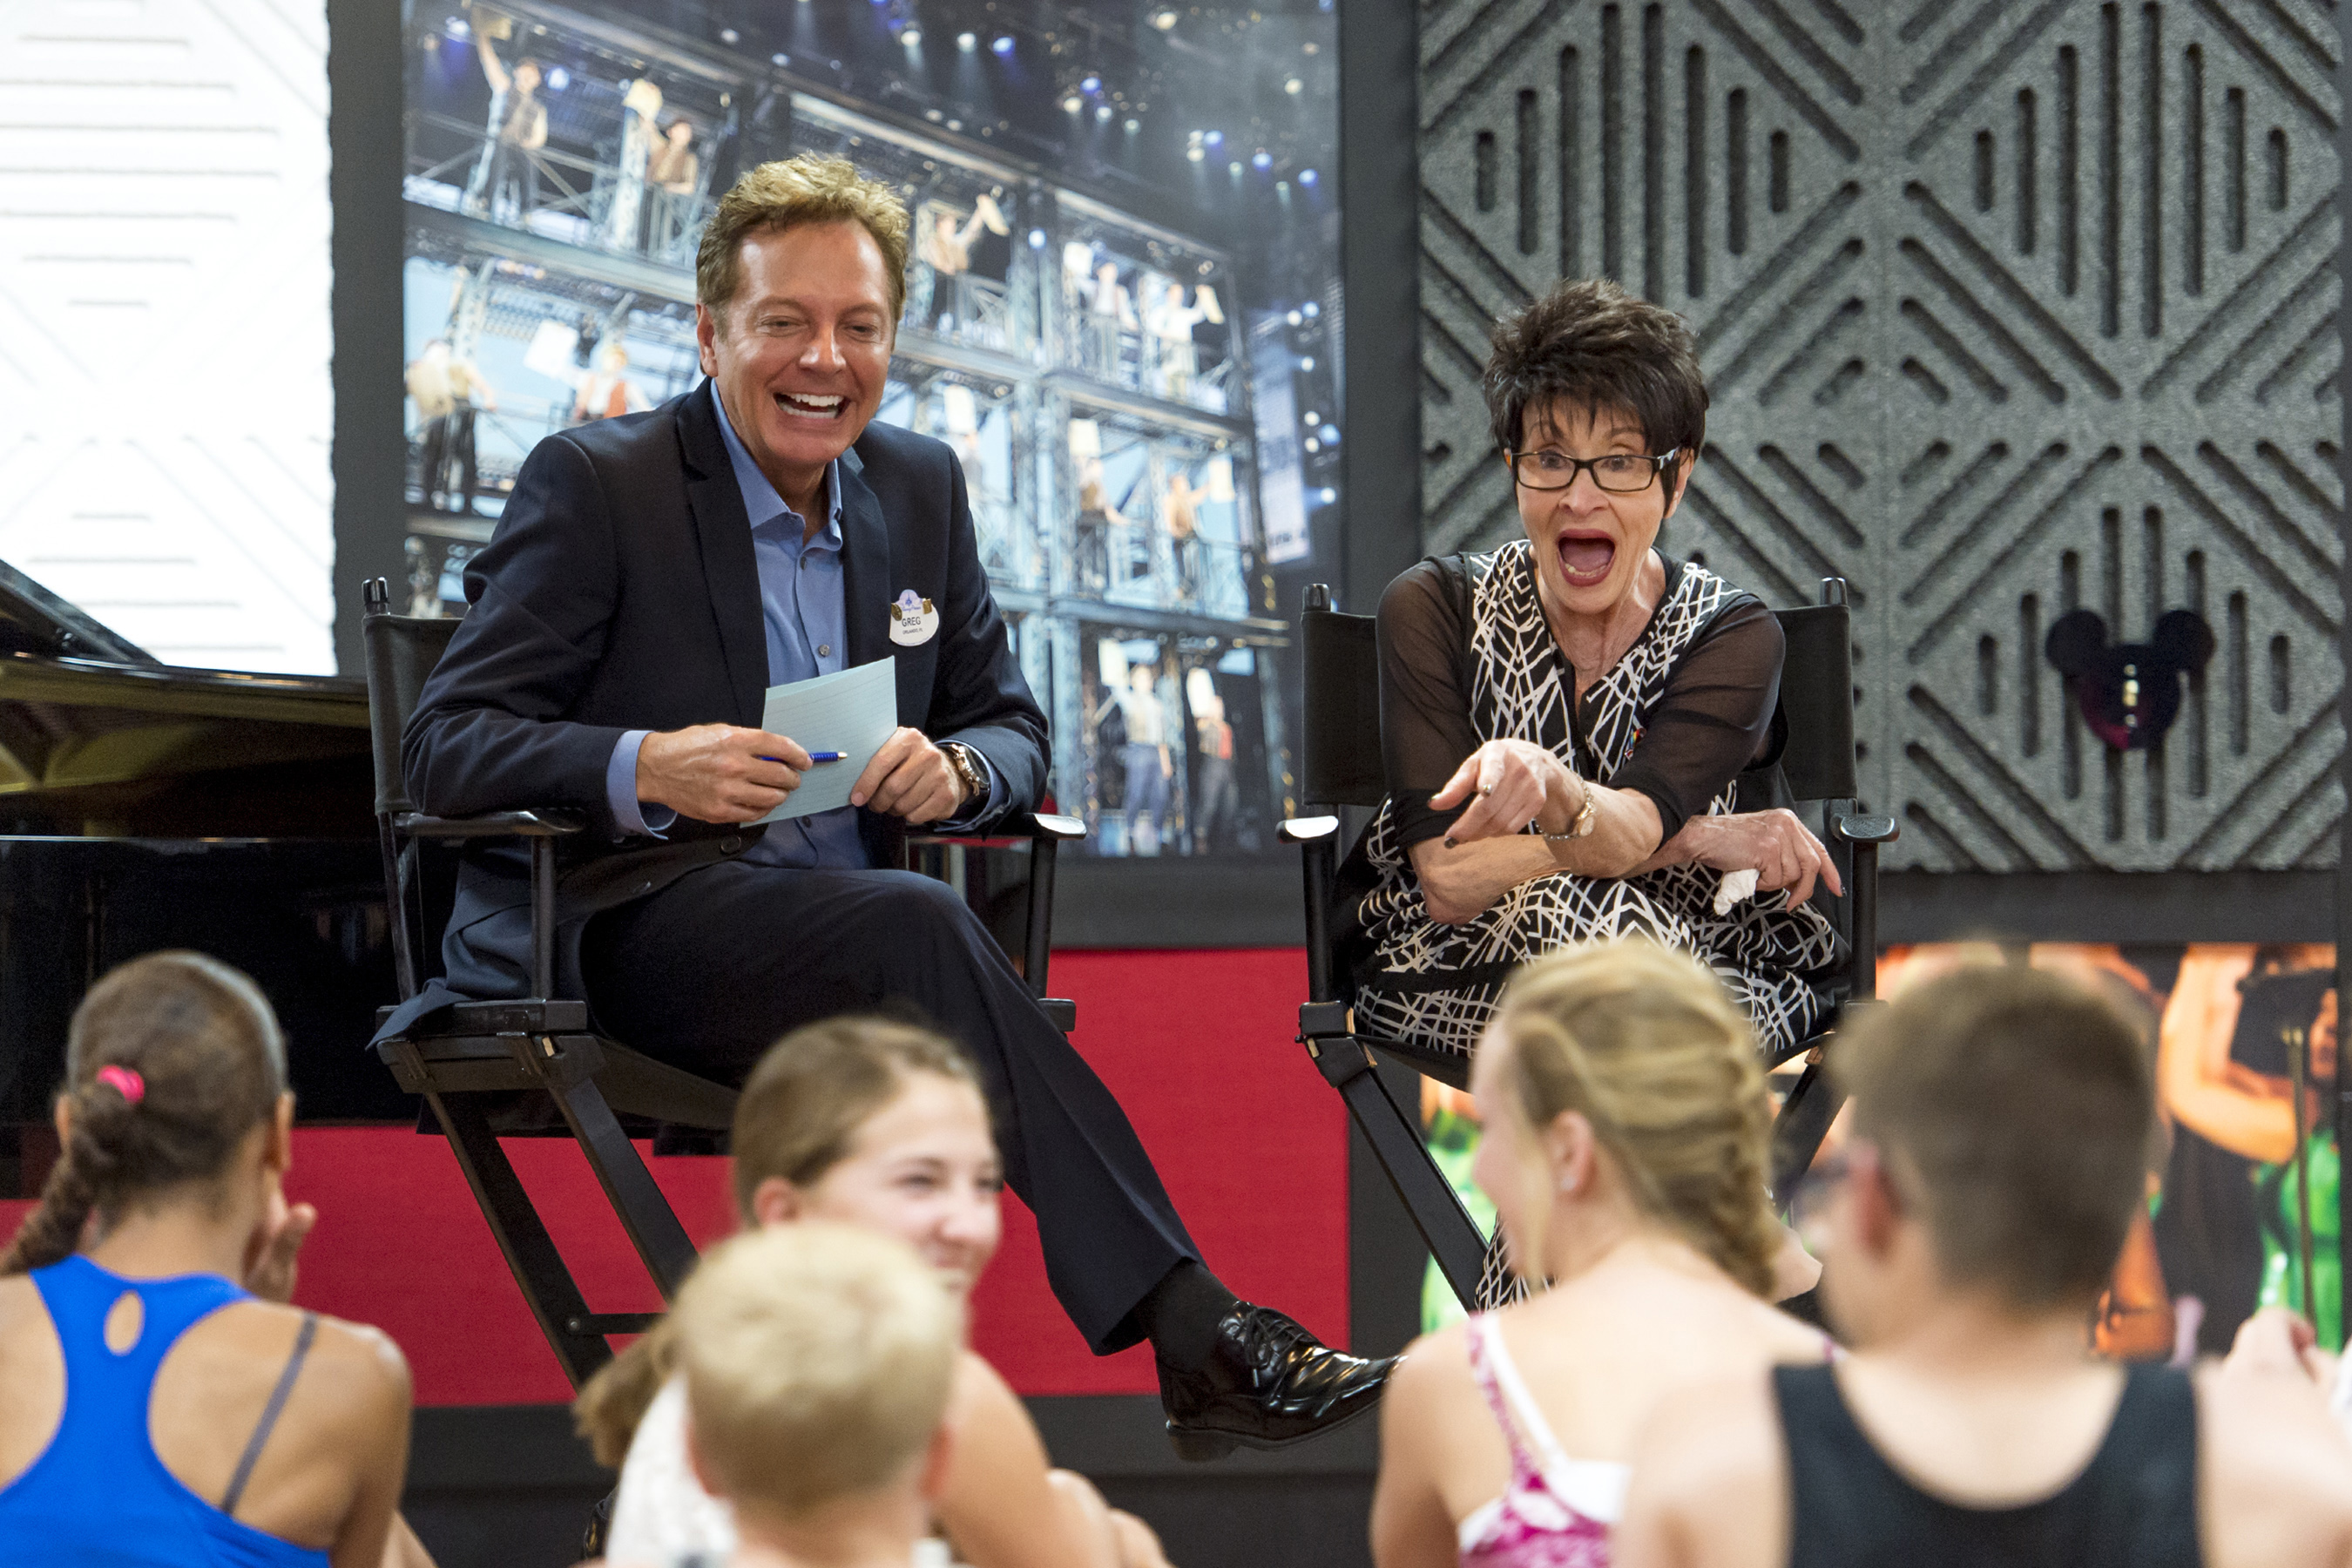 Two-time Tony Award Winner Chita Rivera Visits Disney Performing Arts Students at Epcot